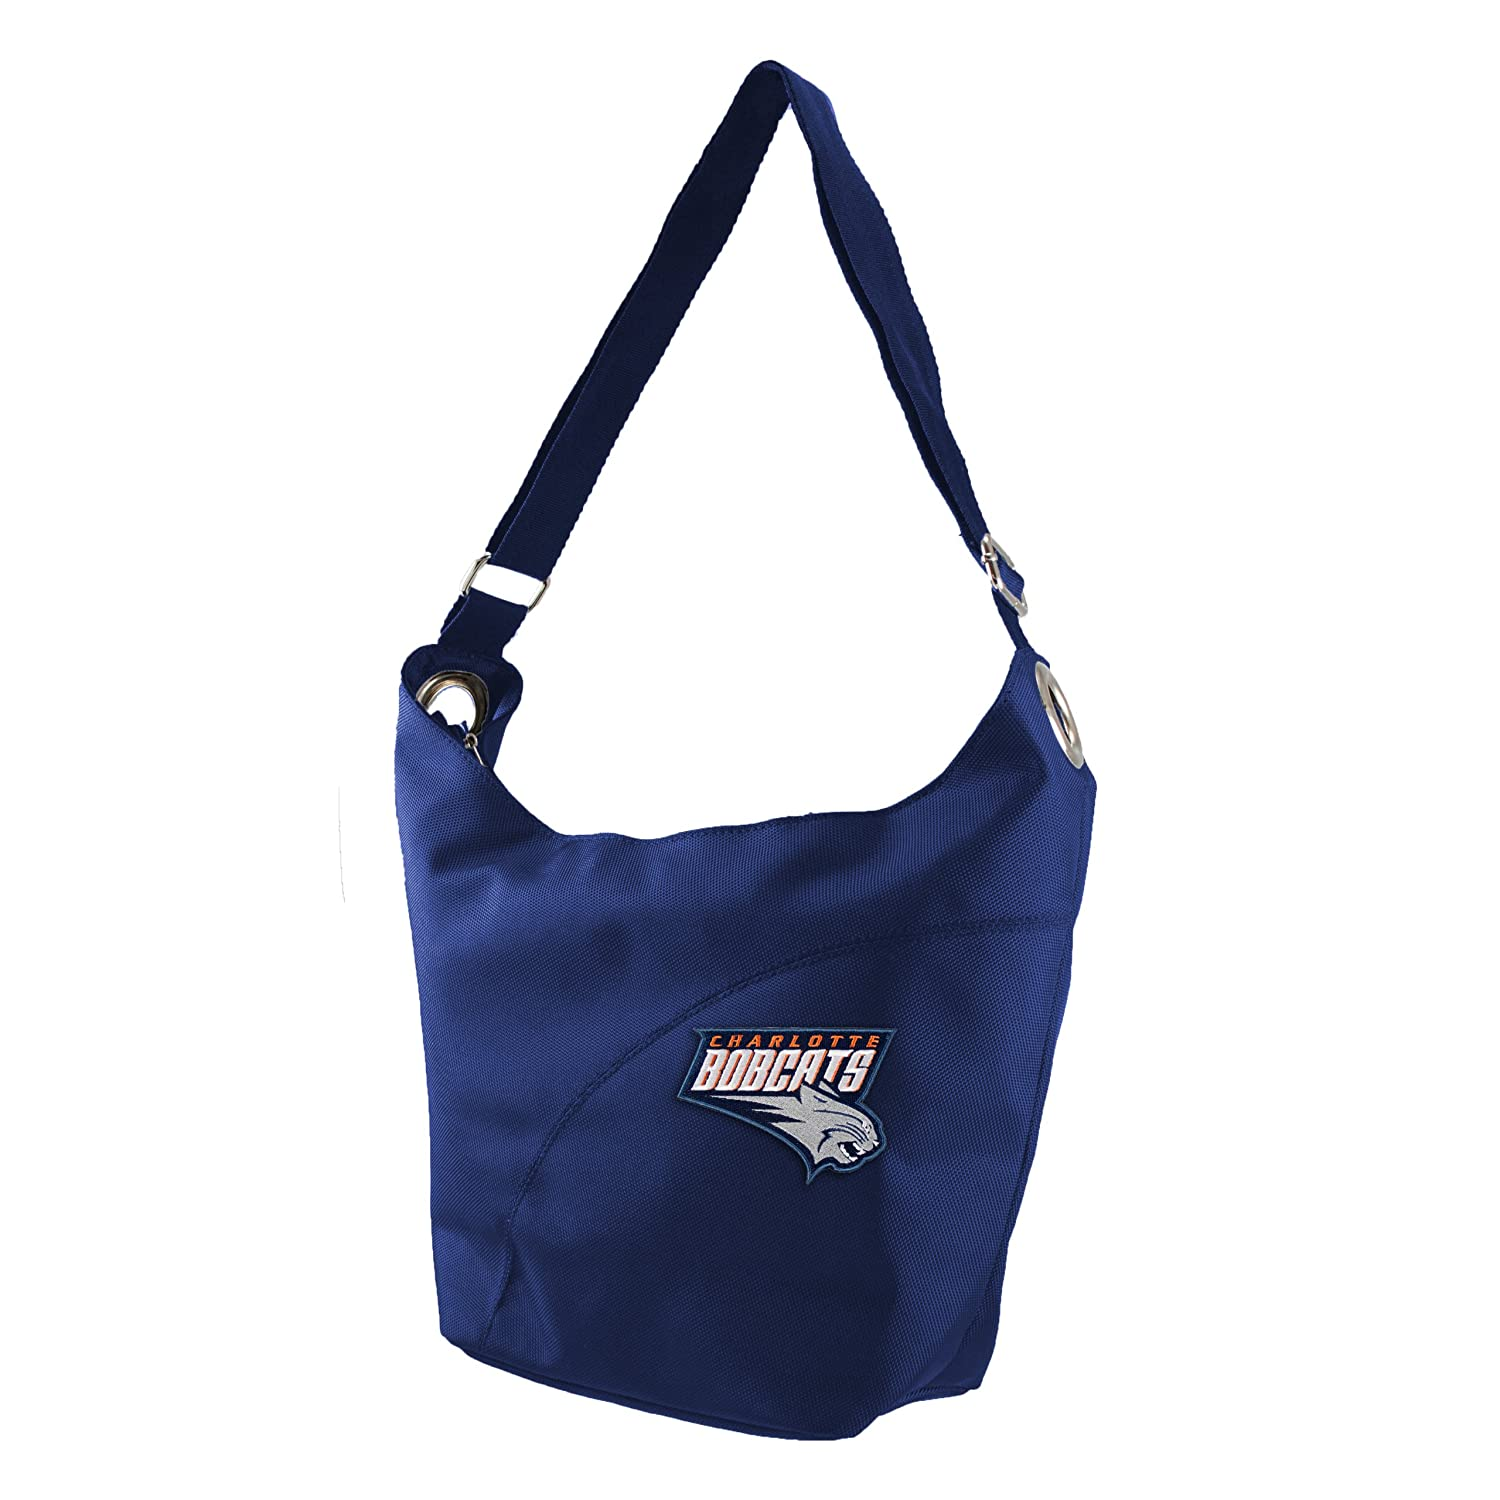 NBA Color Sheen Hobo Purse  Charlotte Bobcats B00CZB880Q